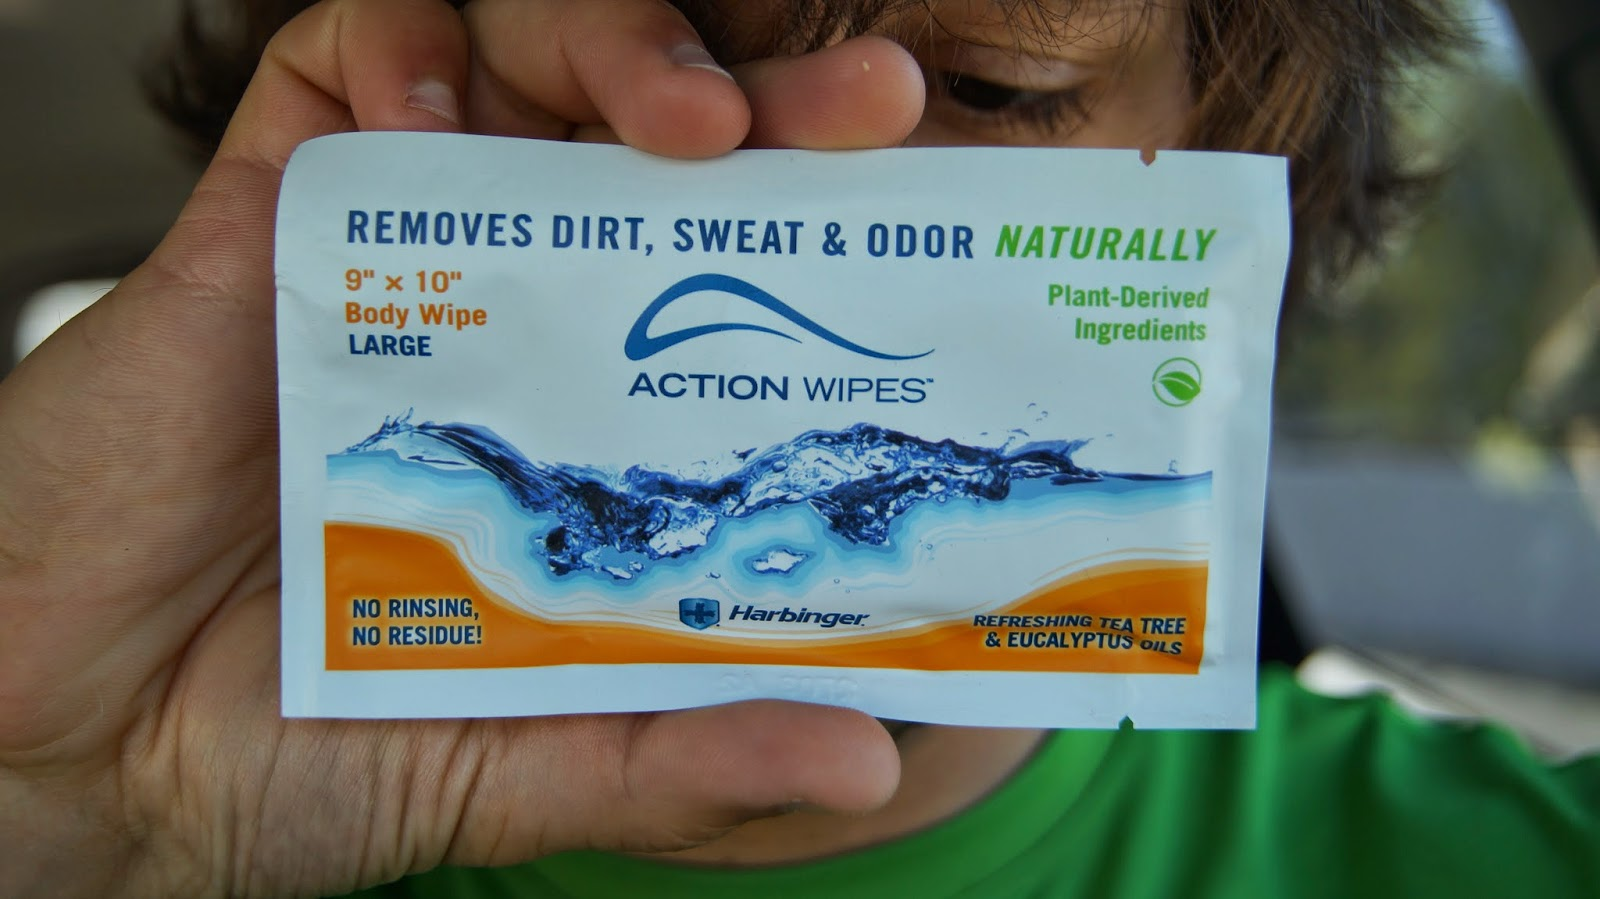 www.actionwipes.com